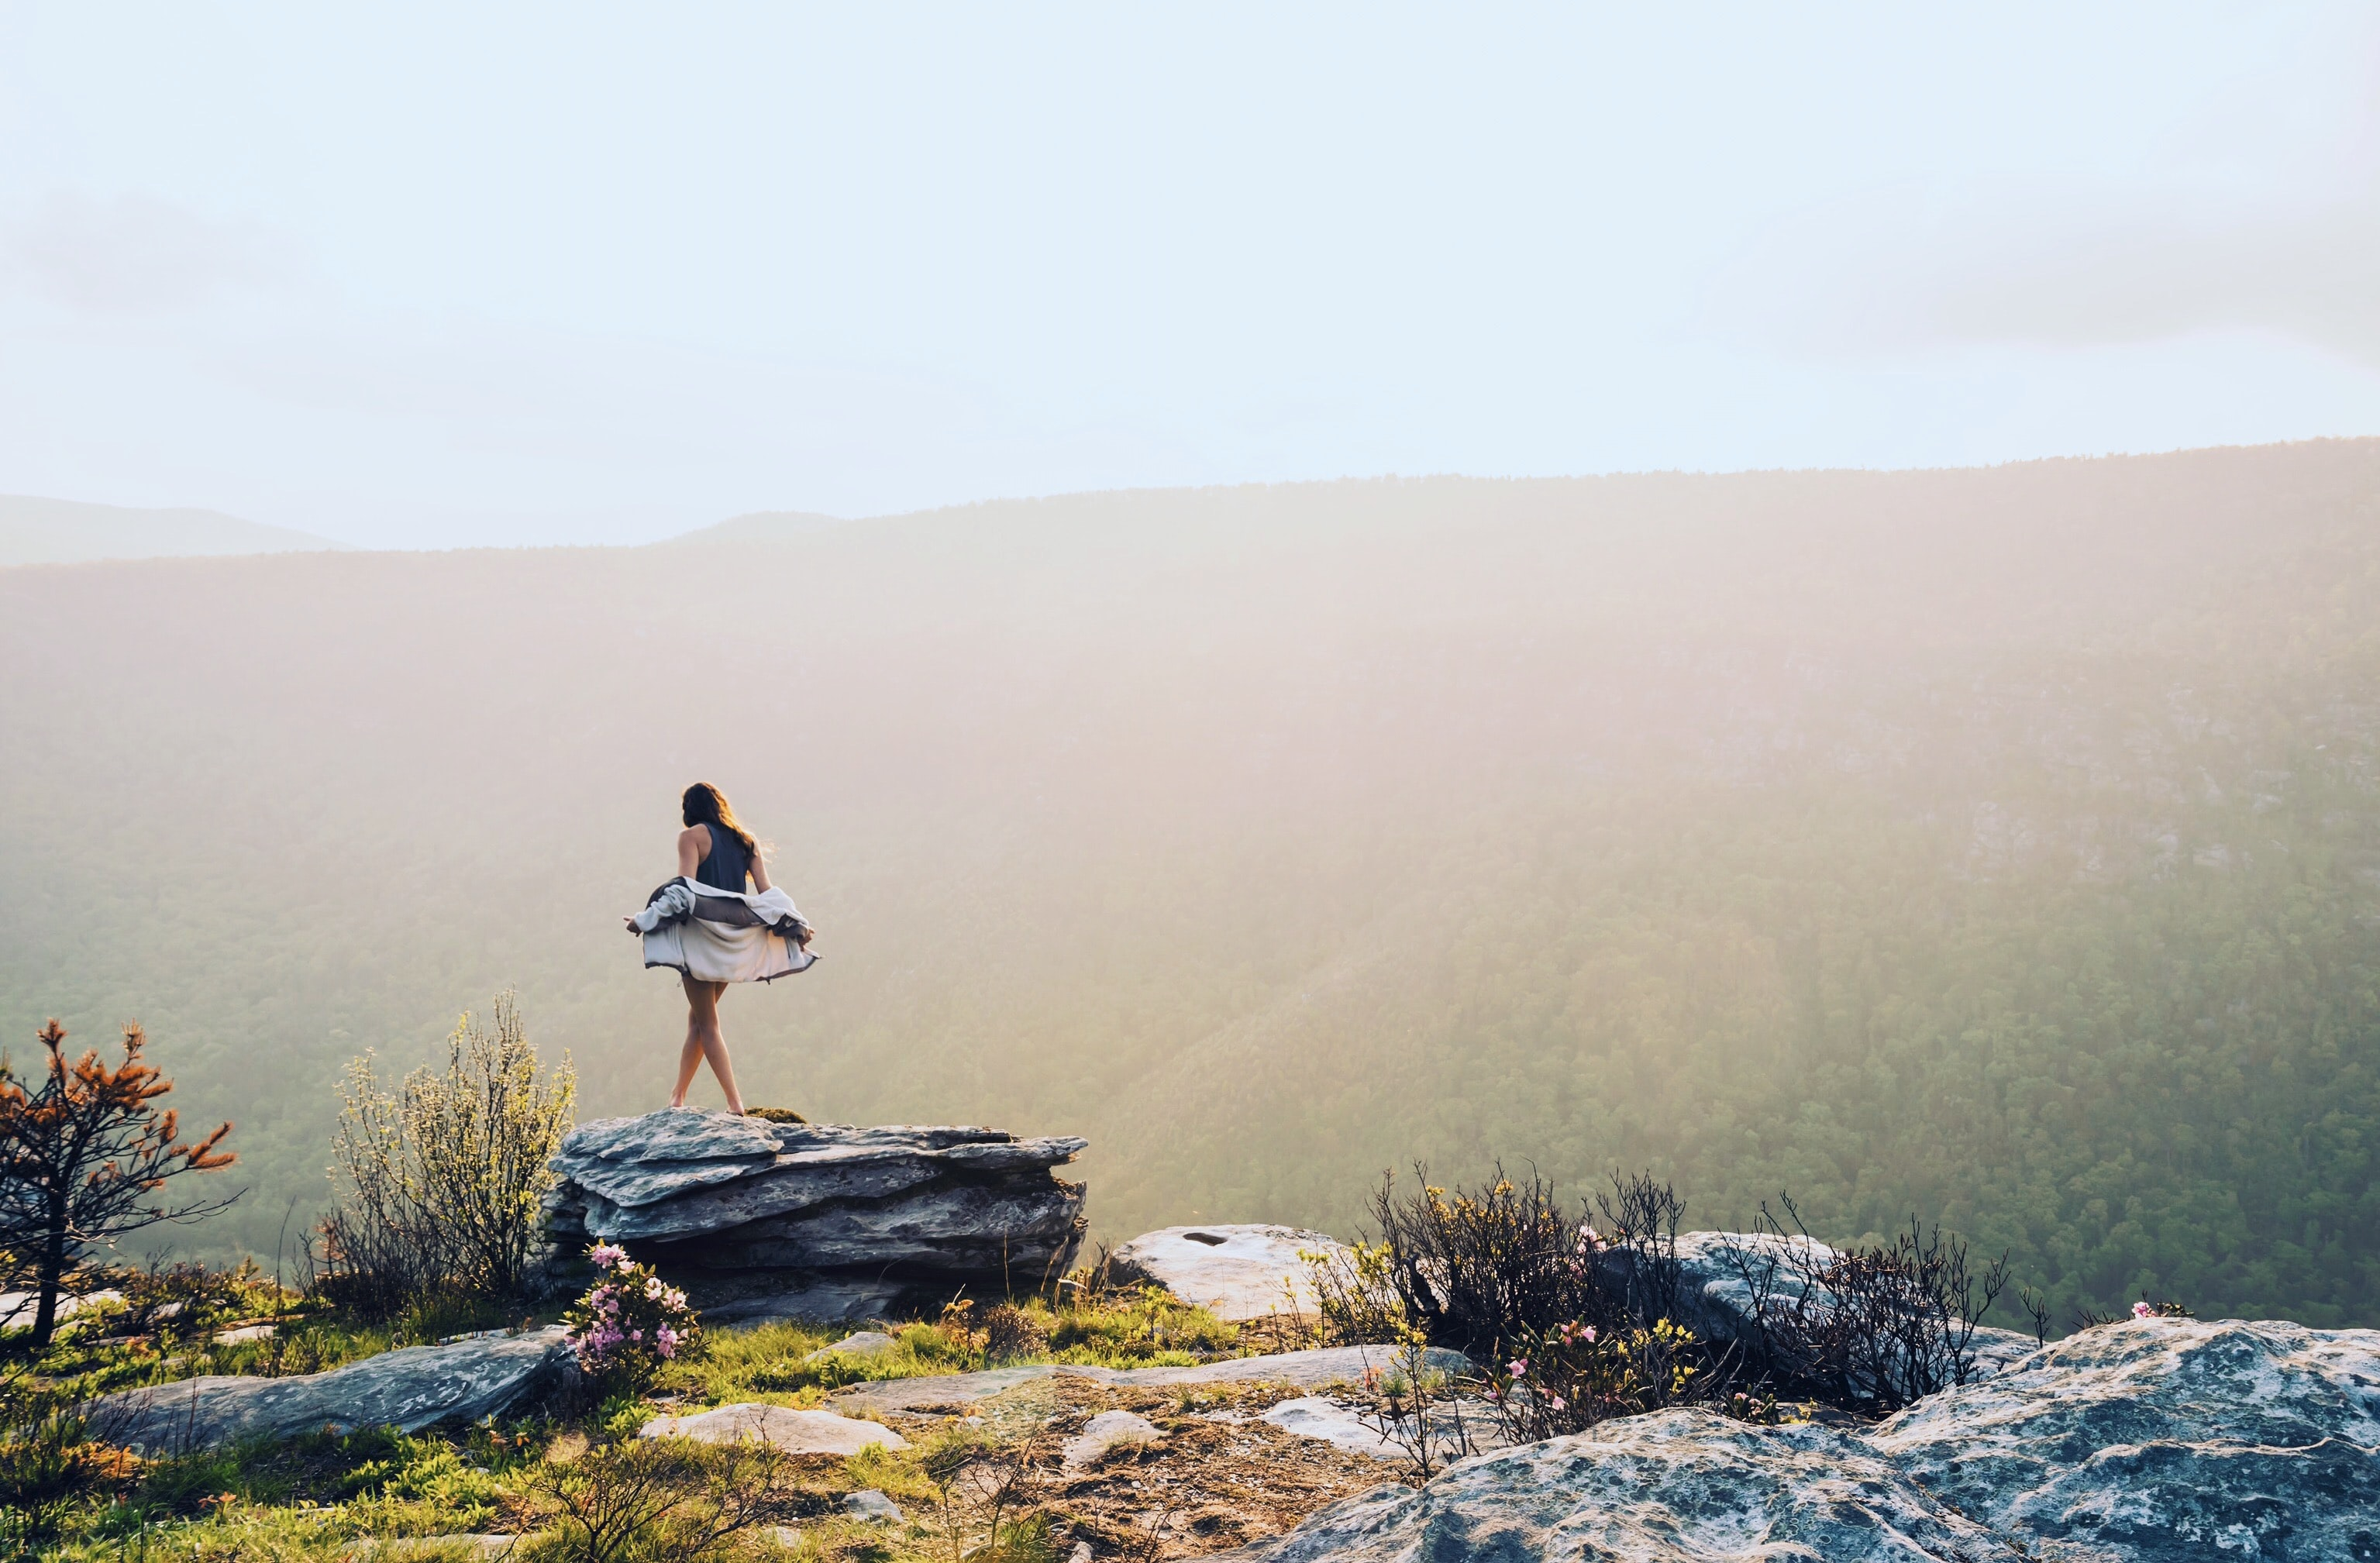 A woman taking off a hoodie on a rock overlooking a wooded valley